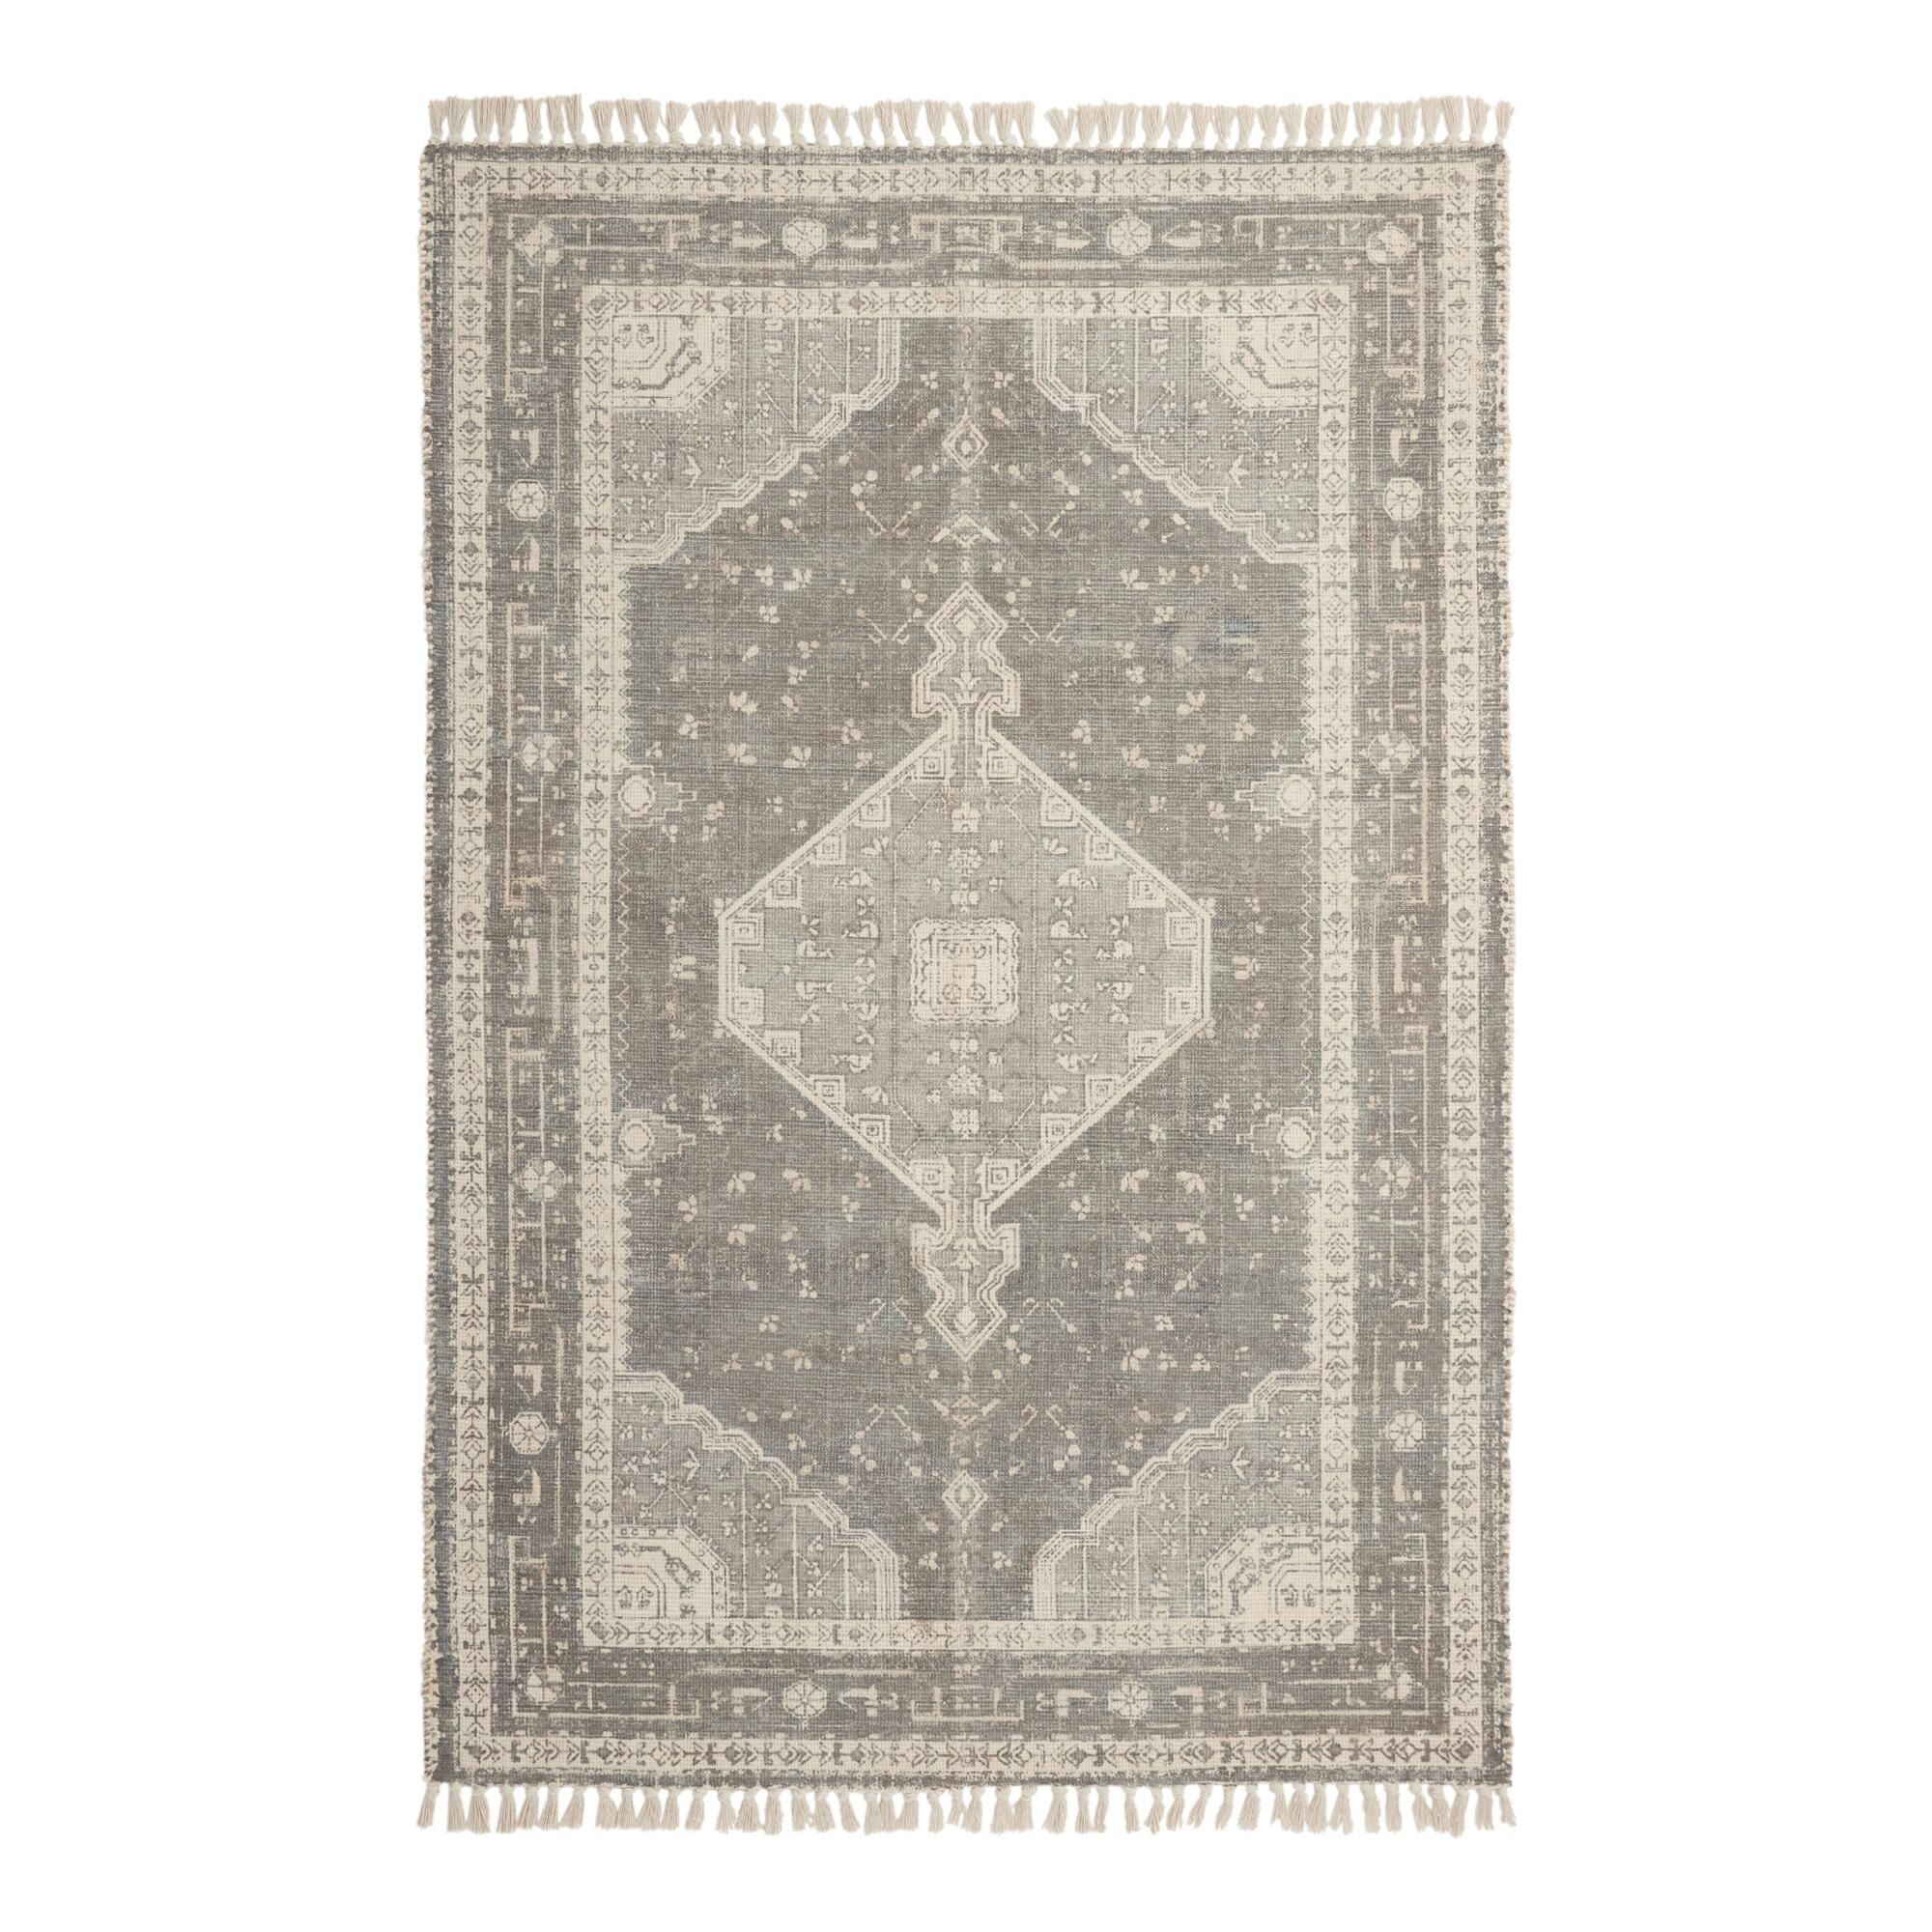 Gray And Ivory Persian Style Cotton Lexington Area Rug 8ftx10ft By World Market Area Rugs 5x8 Area Rugs Rugs